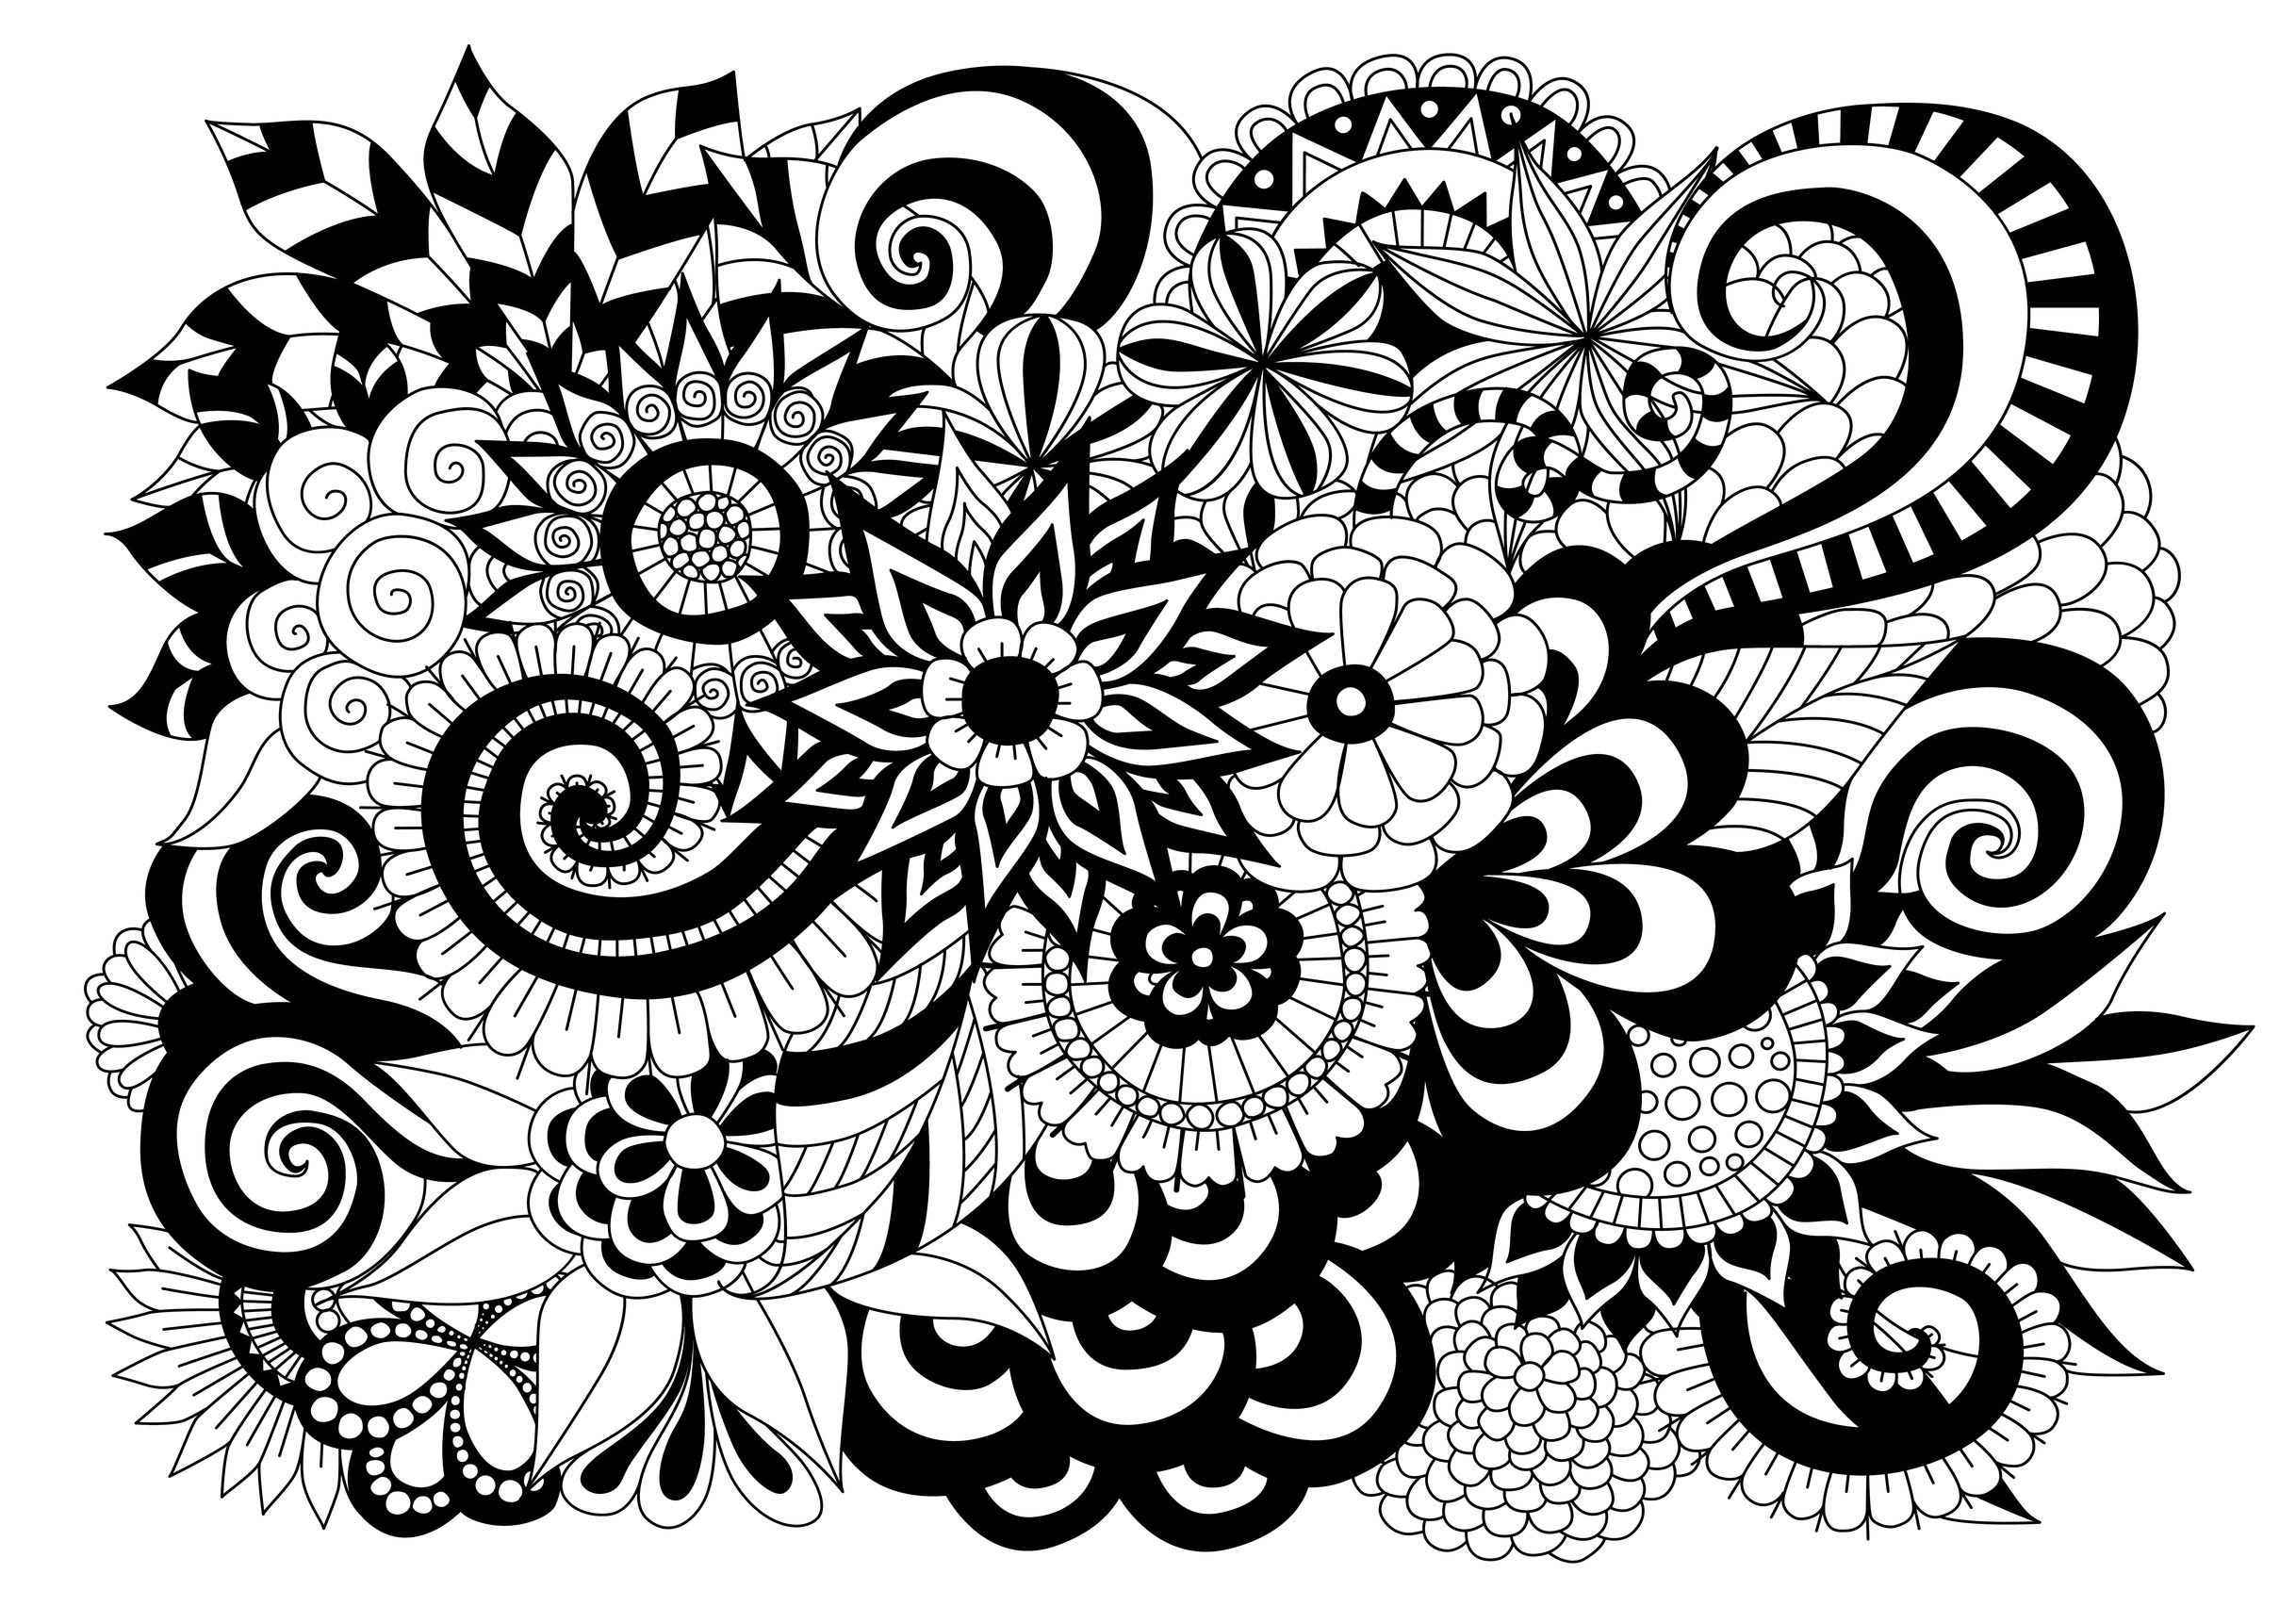 black and white coloring pages for adults black and white geometric coloring page coloring home pages coloring for and adults black white